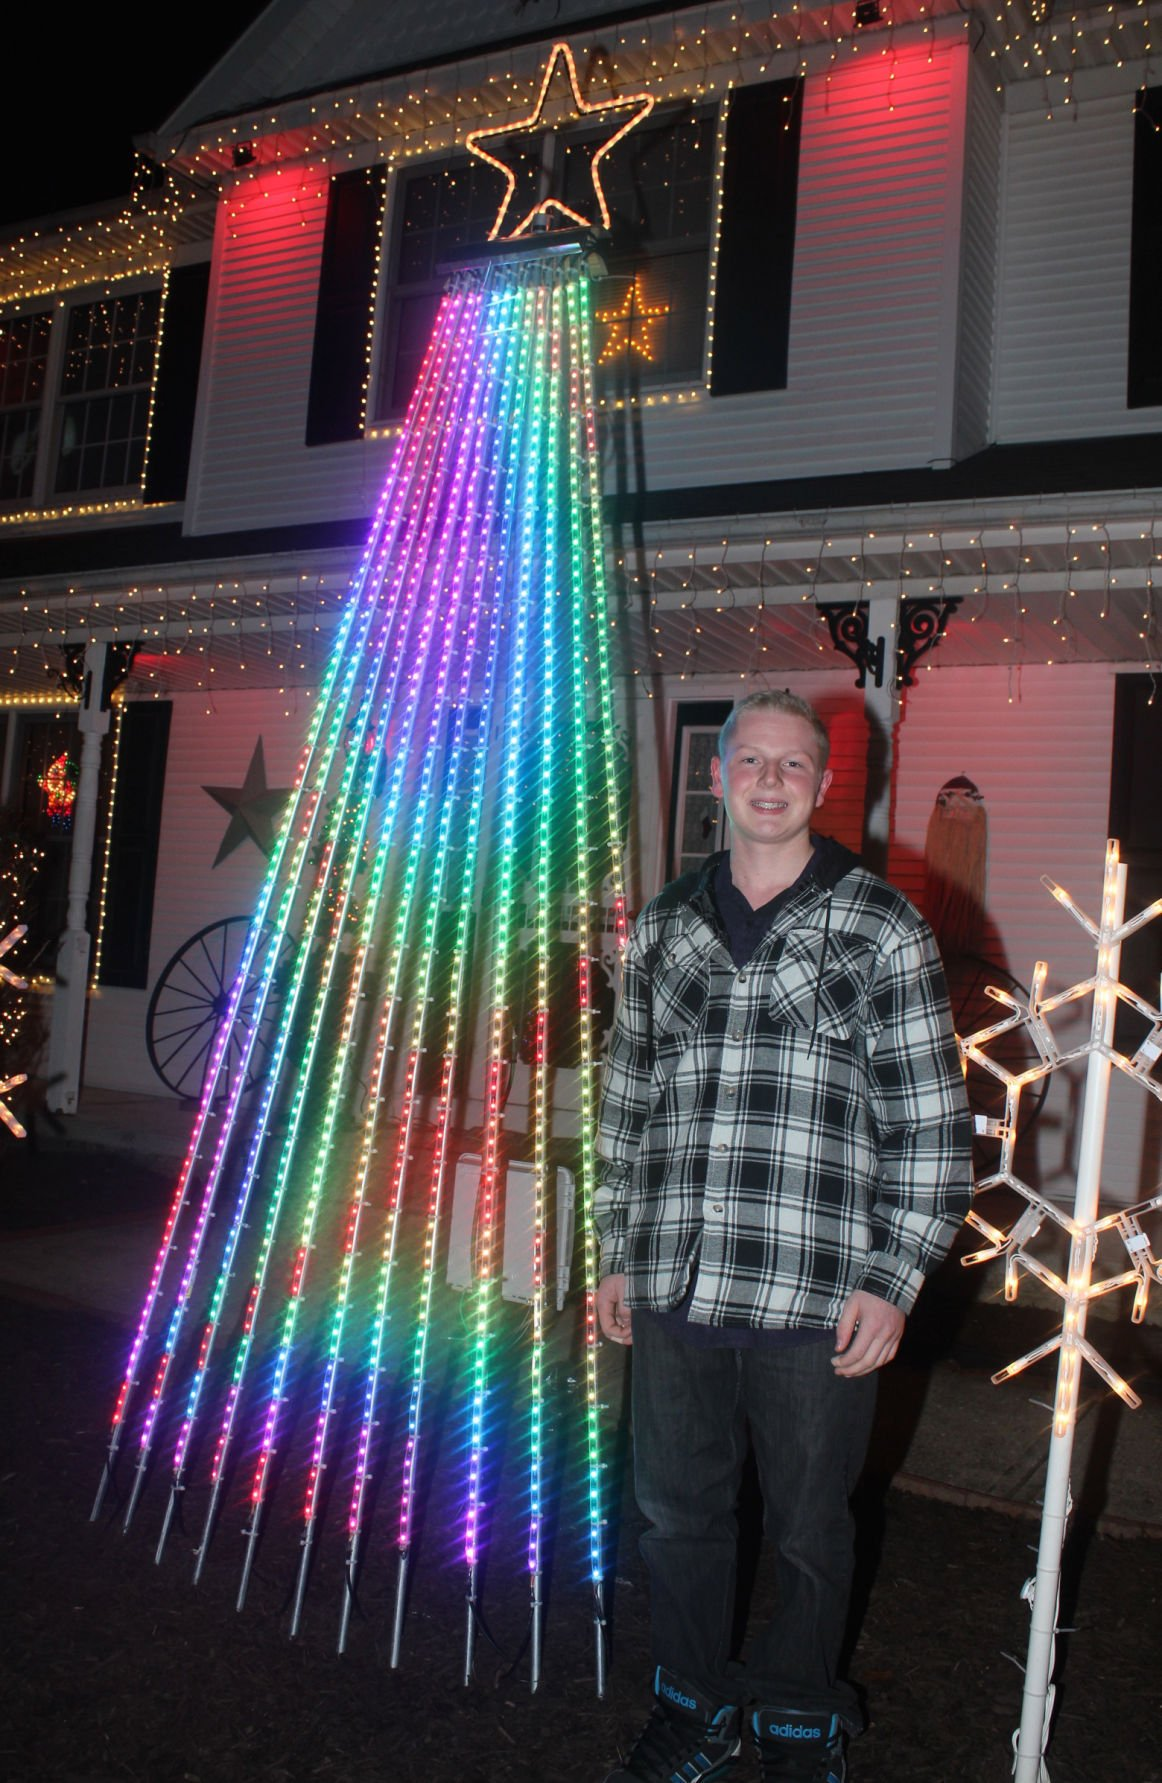 bryan dunbrack and an rgb pixel tree bryan dunbrack 15 has synchronized a christmas lights - Christmas Lights Synchronized To Music